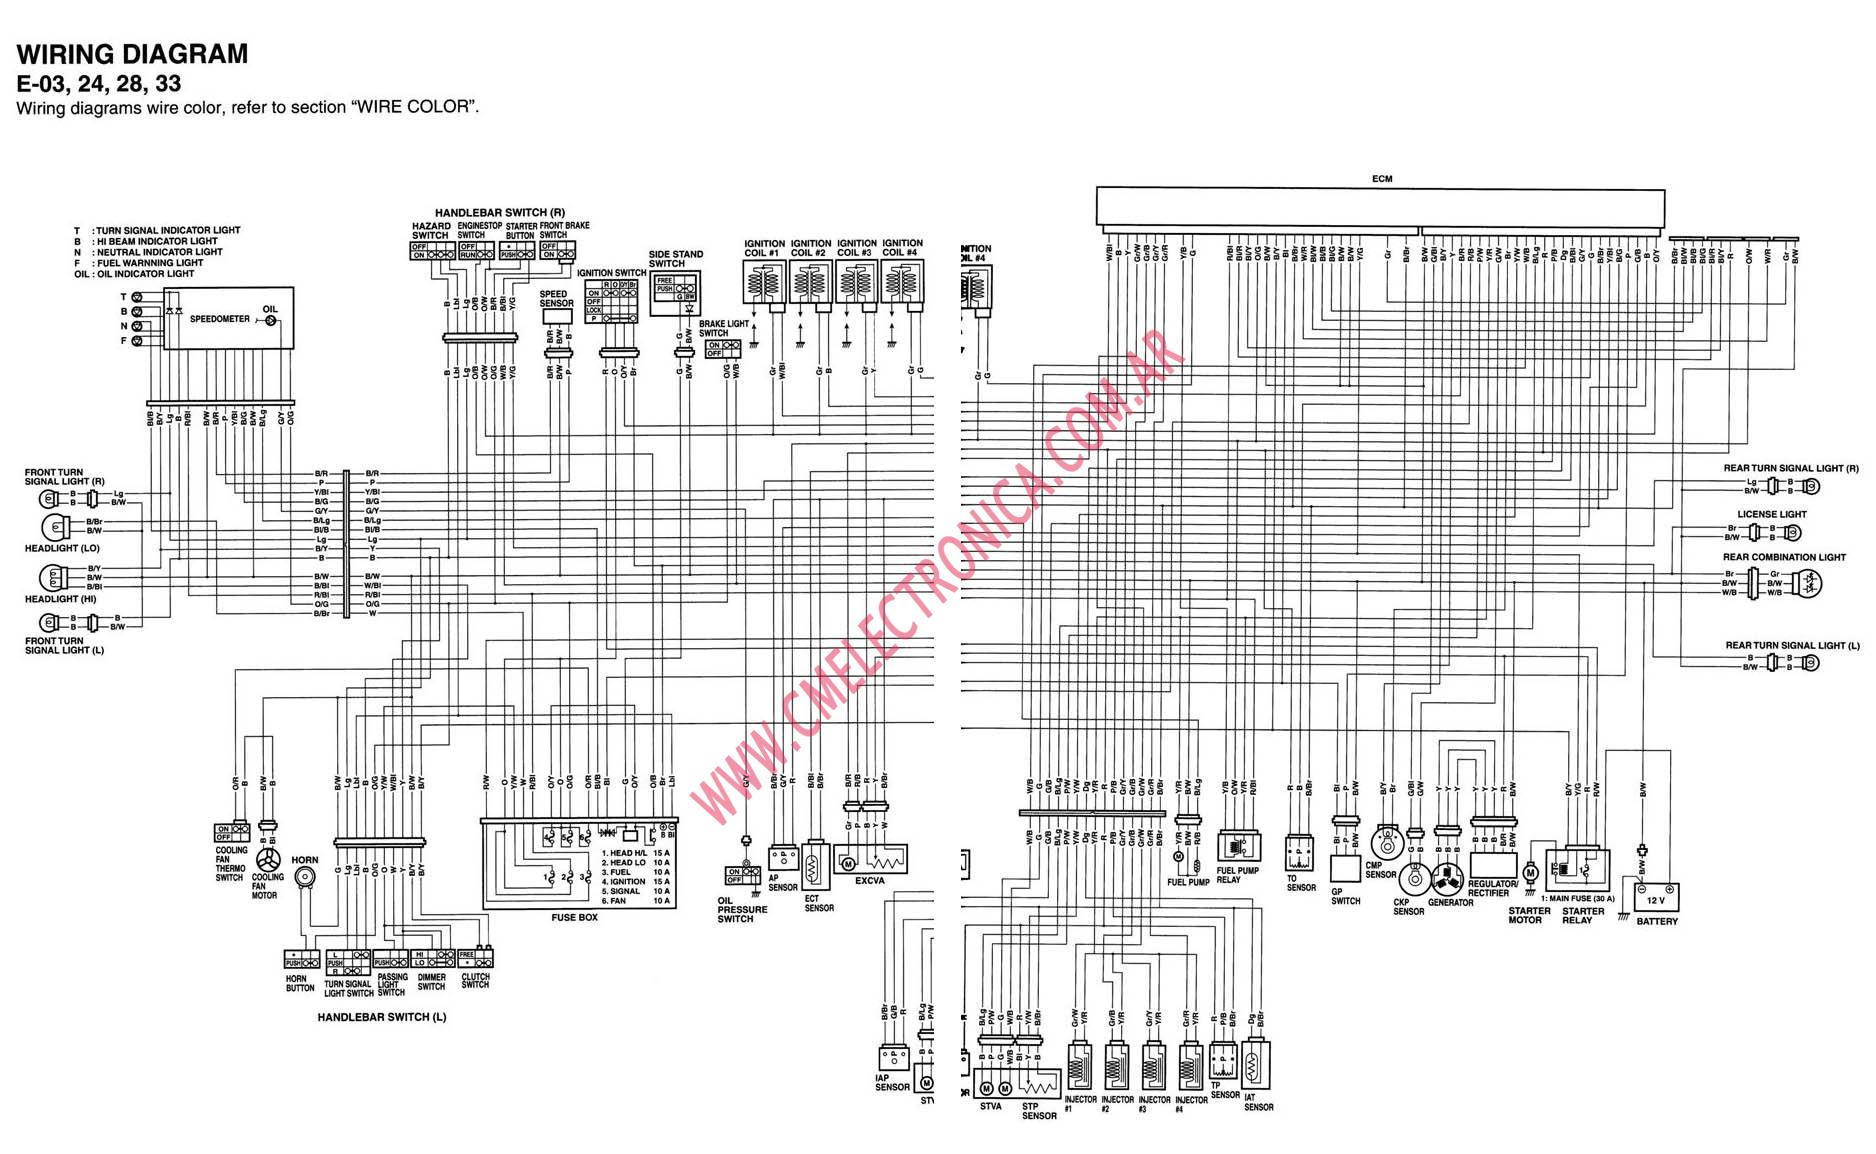 hight resolution of 2006 gsxr wiring diagram wiring schematic 2007 gsxr 600 wiring diagram 2006 gsxr 750 wiring diagram